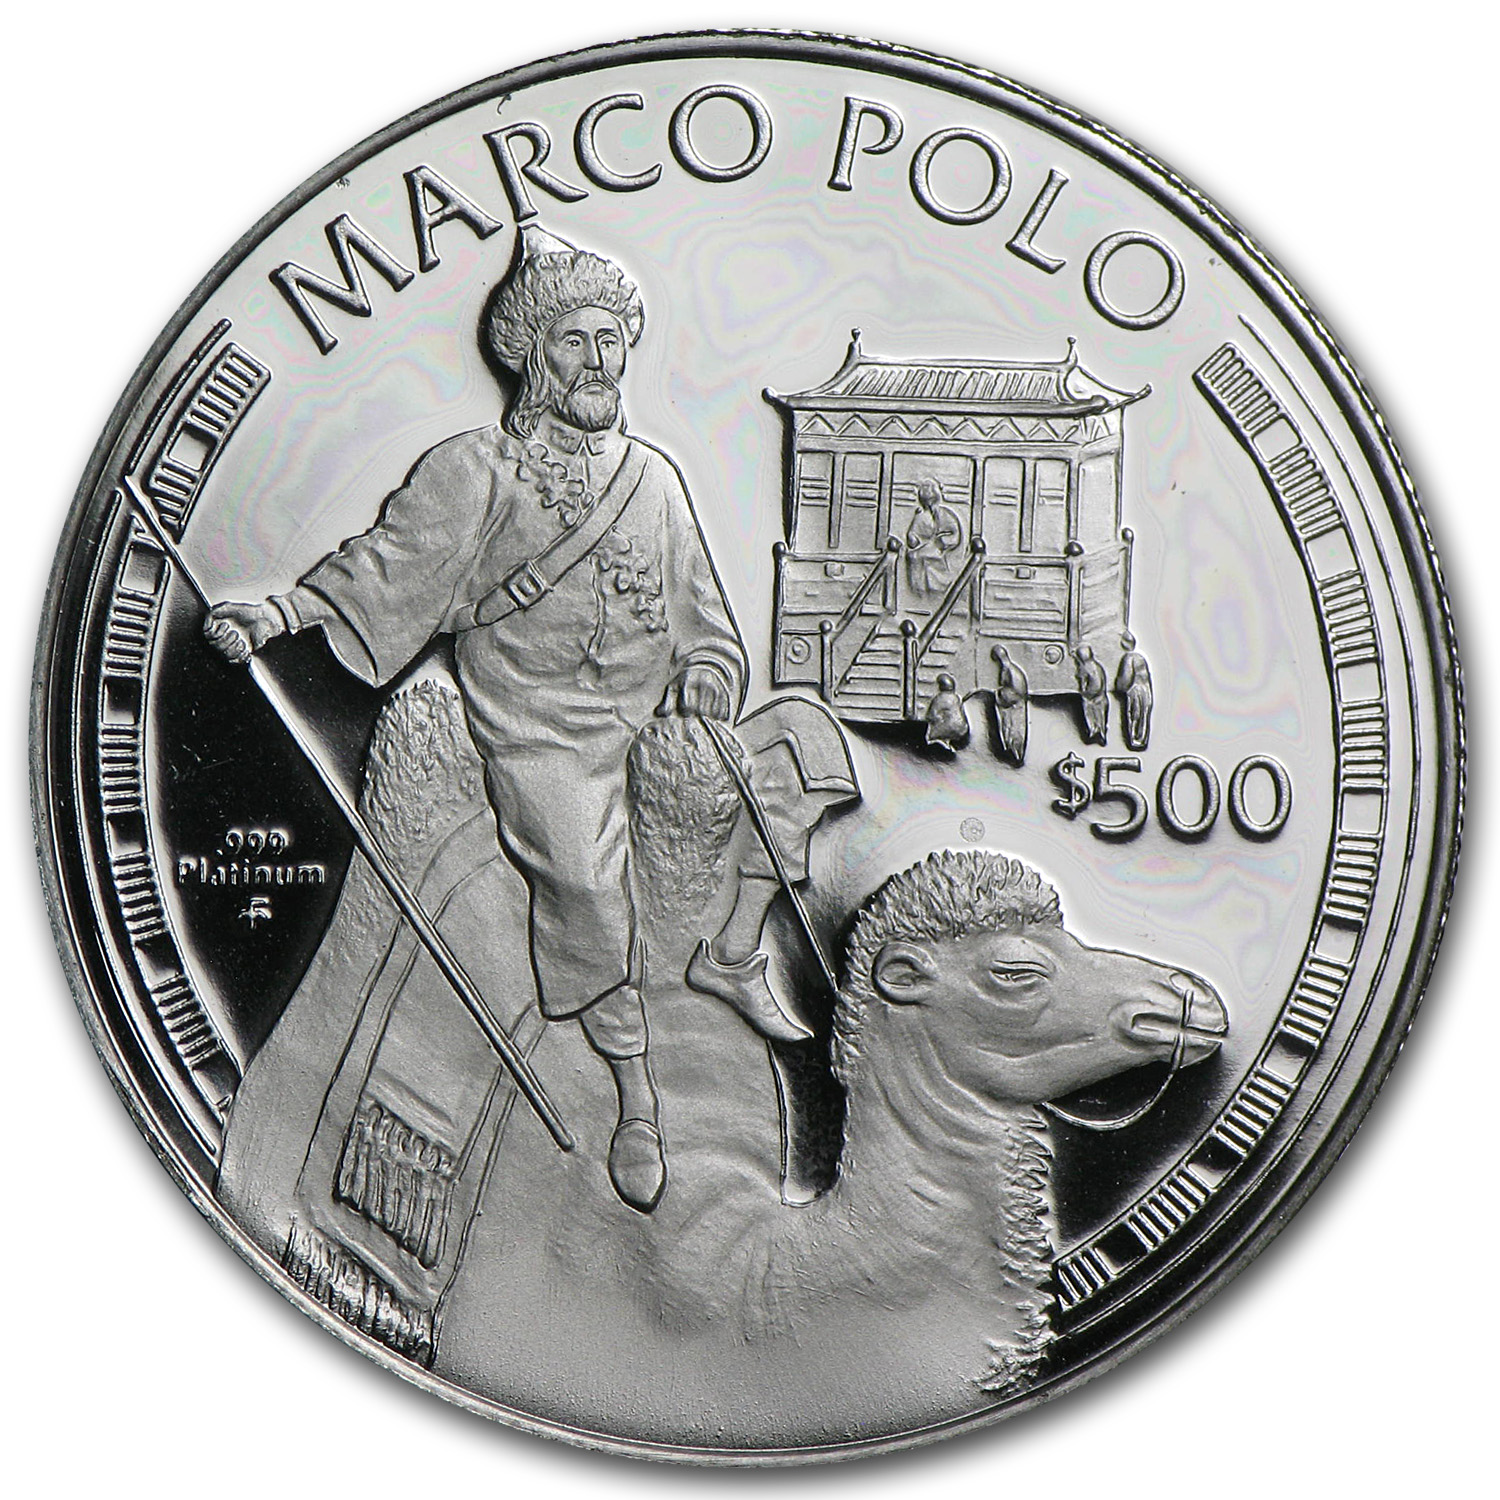 1995 $500 Cook Island Marco Polo Proof Platinum Coin APW .4734